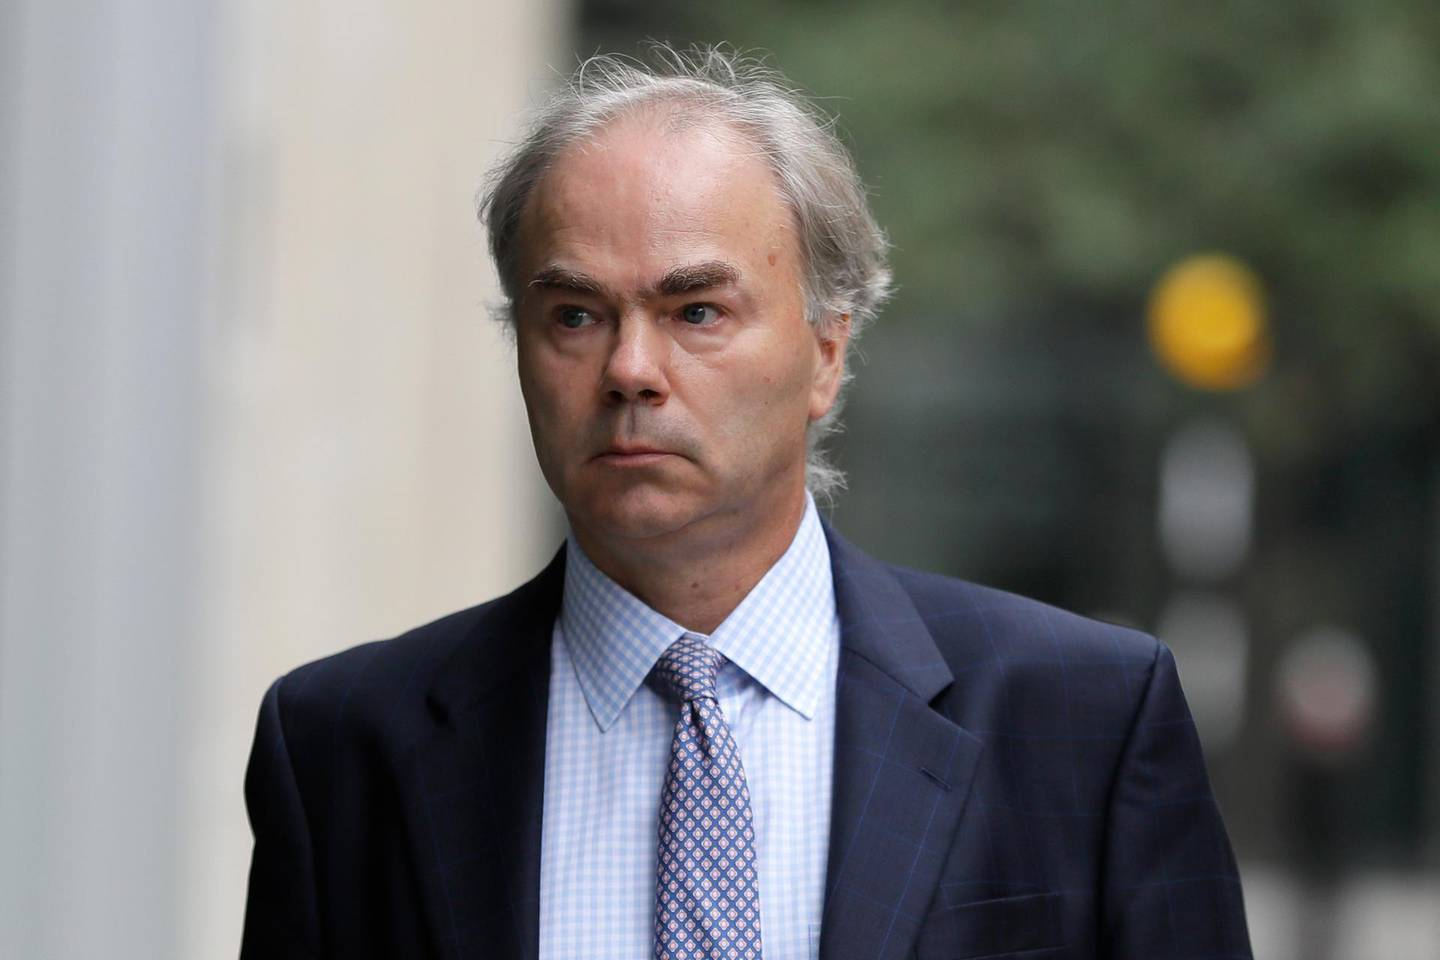 """Justin Rushbrooke QC who is representing Meghan, the Duchess of Sussex arrives at the High Court in London, Monday, Sept. 21, 2020. The next stage in the Duchess of Sussex's legal action against a British newspaper over its publication of a """"private and confidential"""" letter to her estranged father is due to be heard at the High Court. (AP Photo/Kirsty Wigglesworth)"""